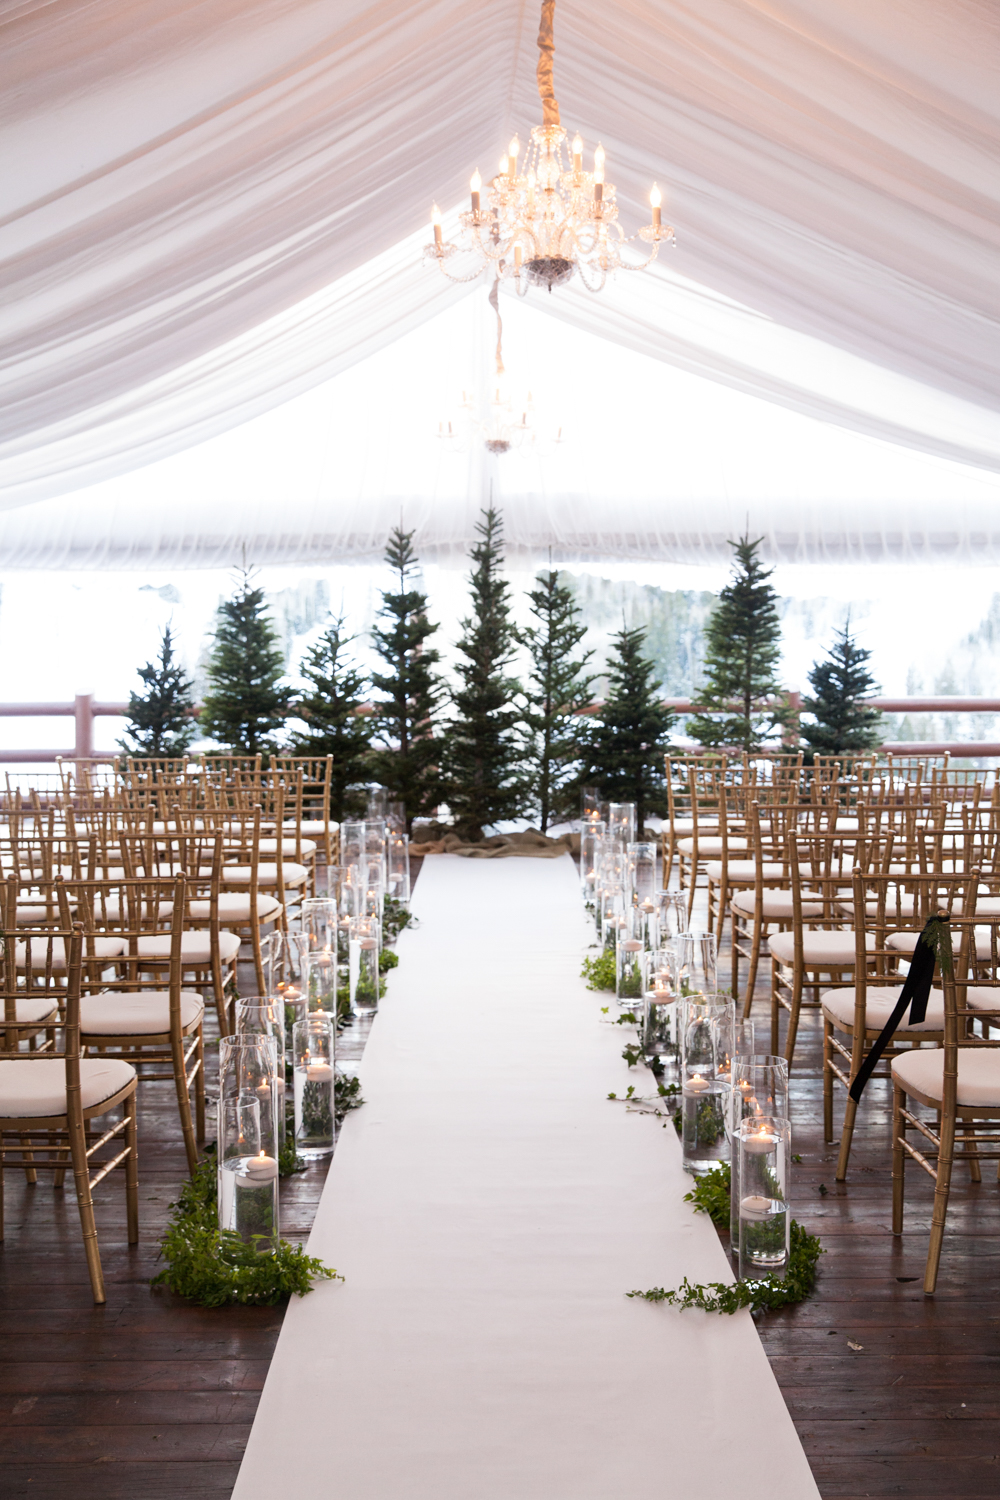 Give your guests the true winter wonderland wedding experience by exchanging your vows outdoors, surrounded by snow-covered trees and lots of sparkling candlelight. Photo Source:  Melissa Kelsey Photography .